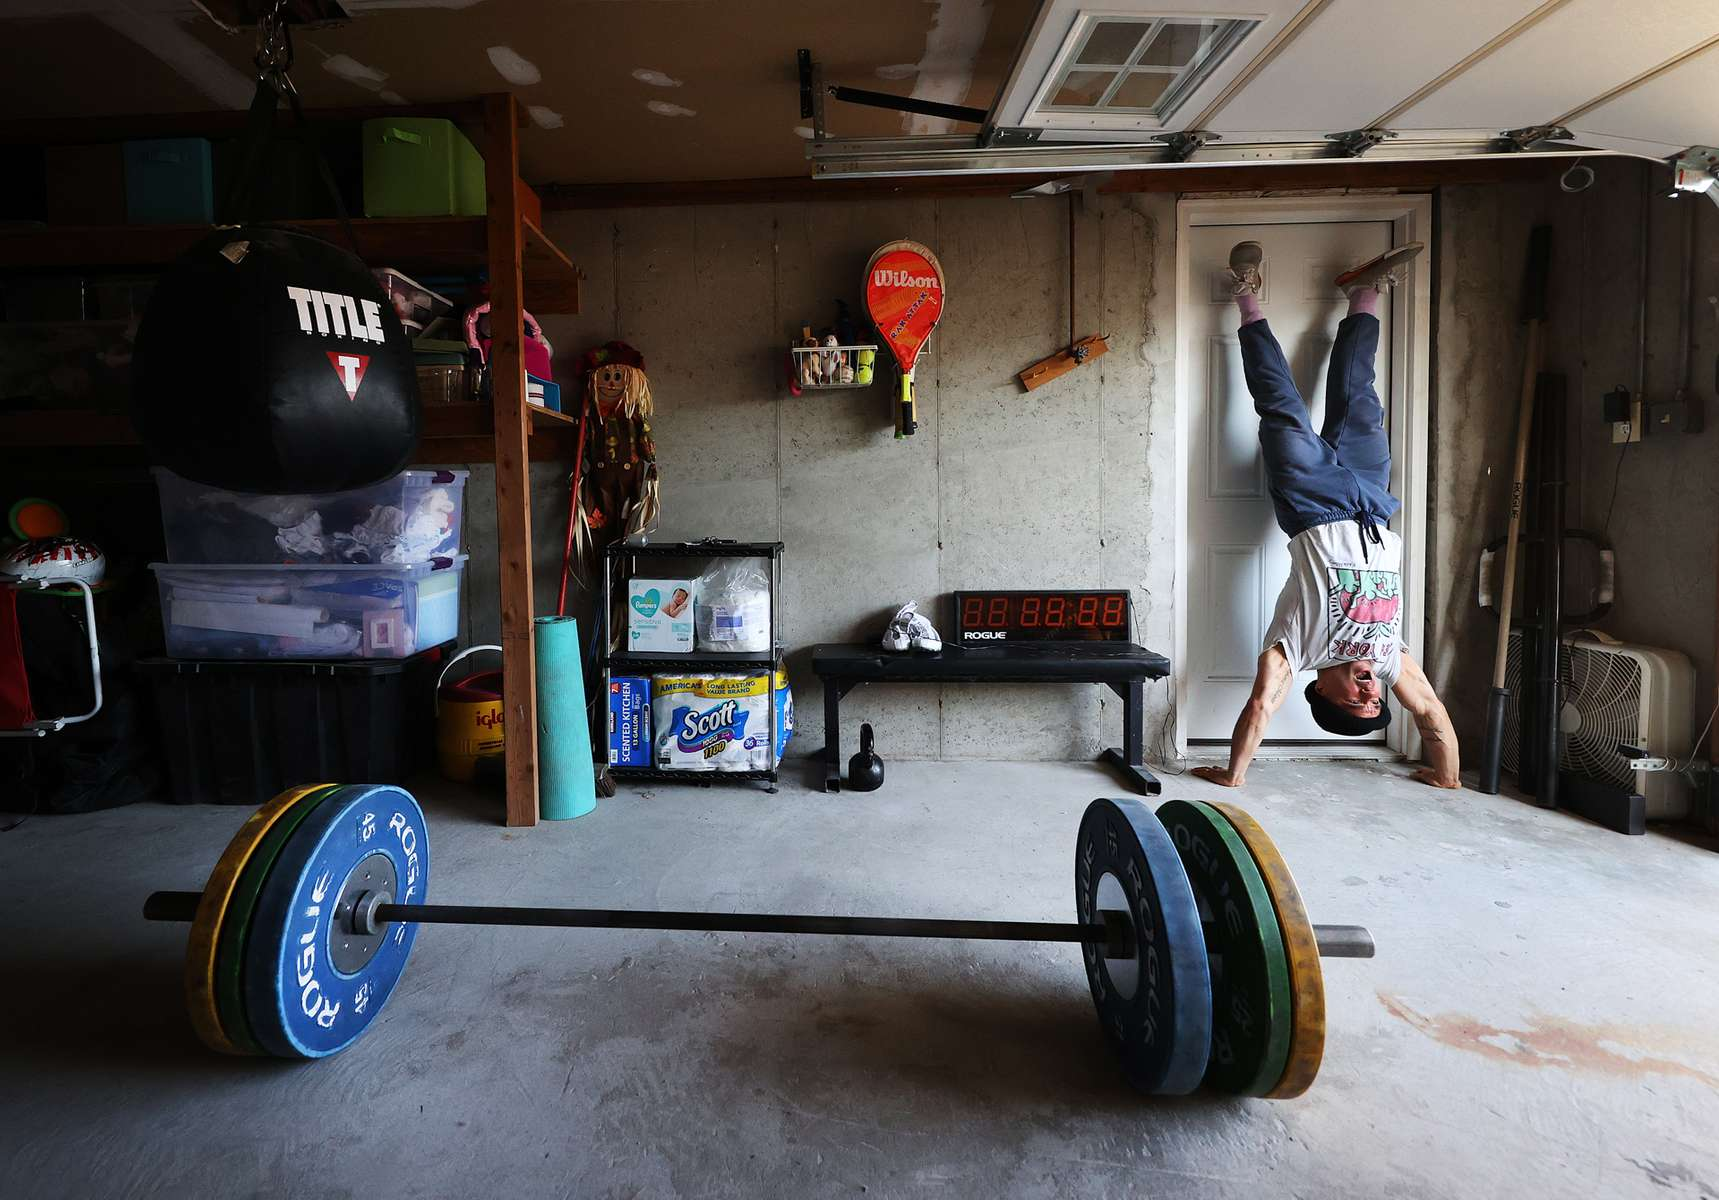 Dennis Guerrero trains in his garage at his home on May 13, 2020 in Long Beach, New York.  Dennis is an Amateur boxer and has competed in the New York City Golden Gloves.  He also owns a CrossFit Gym called CrossFit Jetty in Oceanside, New York. He was training to compete in this year's Golden Gloves tournament but it has been cancelled due to the coronavirus pandemic.  He also co owns a CrossFit Gym called CrossFit Jetty.  His gym has been closed by New York Governor Andrew Cuomo since March 16th due to the coronavirus COVID-19 pandemic.  Until the gyms are deemed safe to open he will continue to stay fit by training at home with the hope that he can box again later this year.